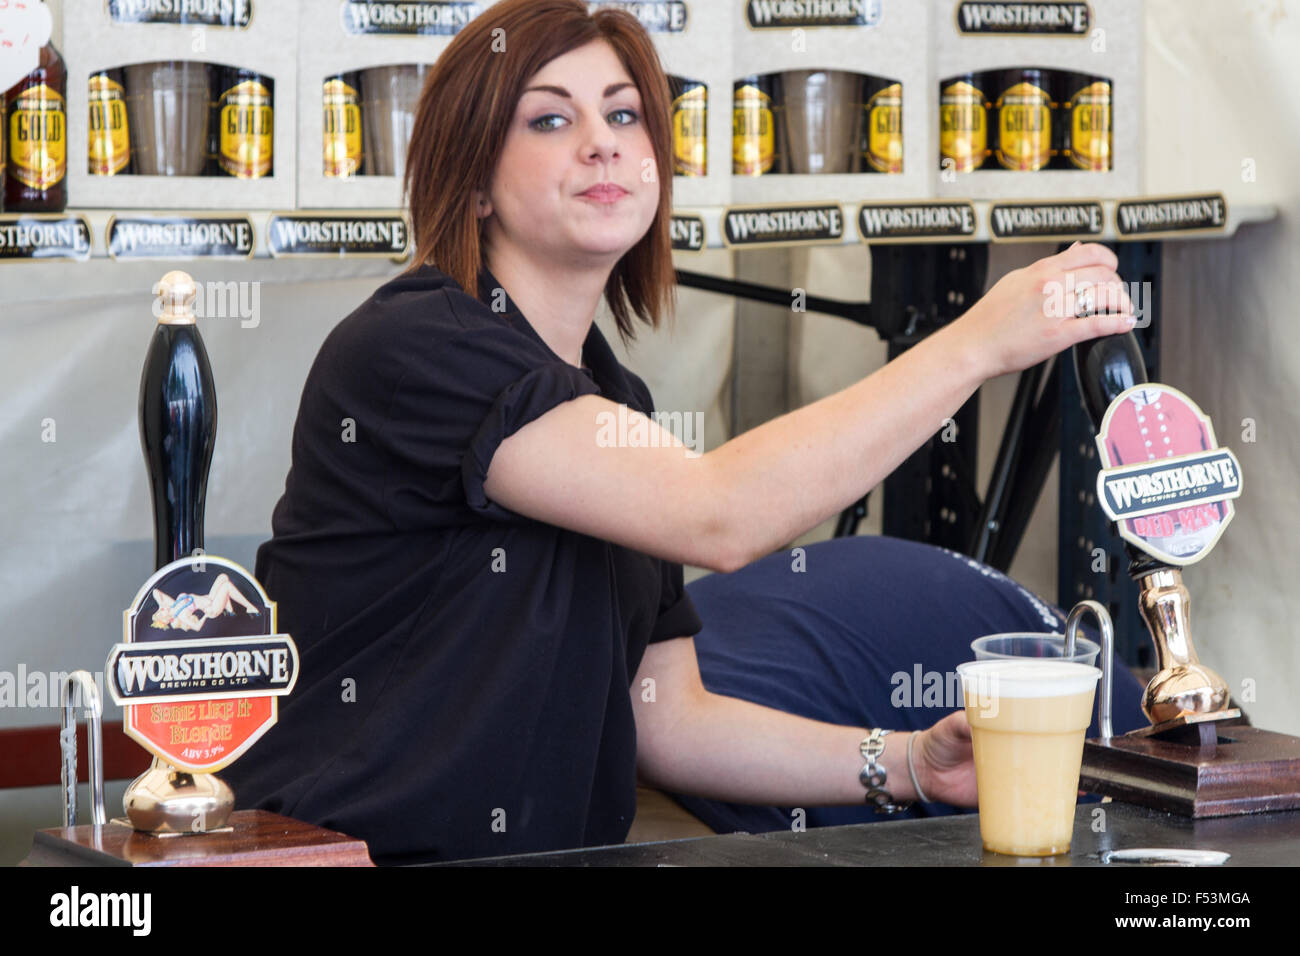 mines a pint - Stock Image